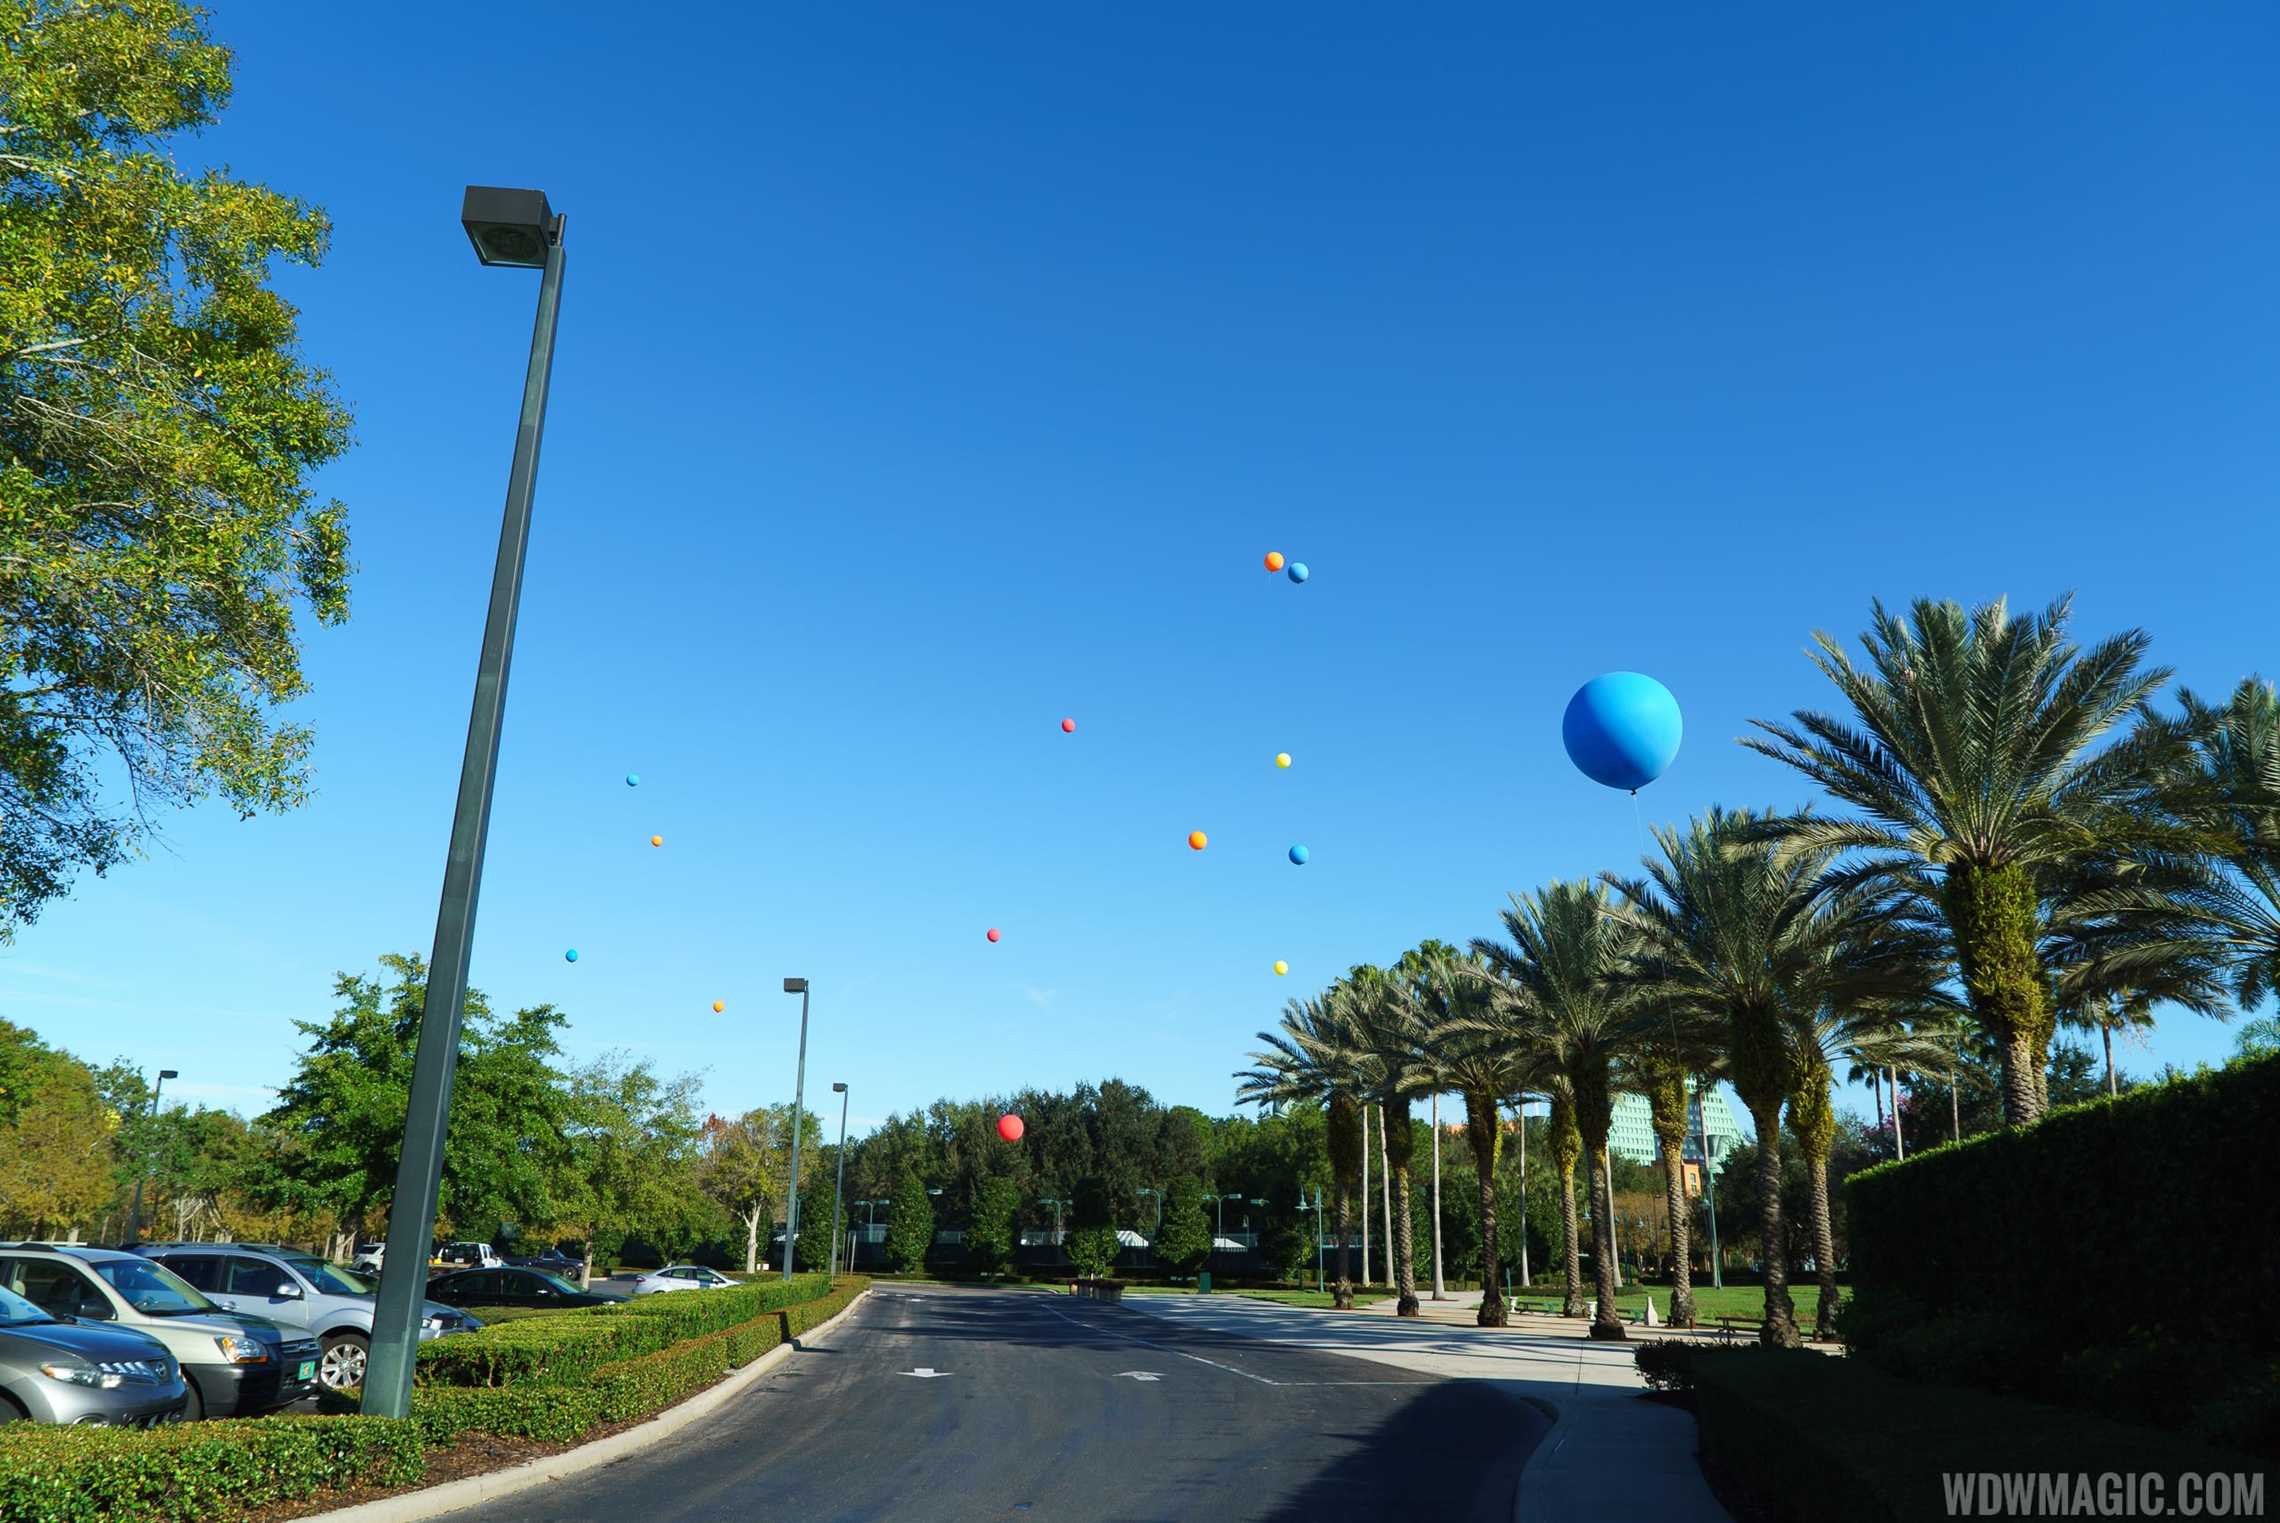 Height test balloons near the Fantasia Gardens mini-golf for a previous non-related project